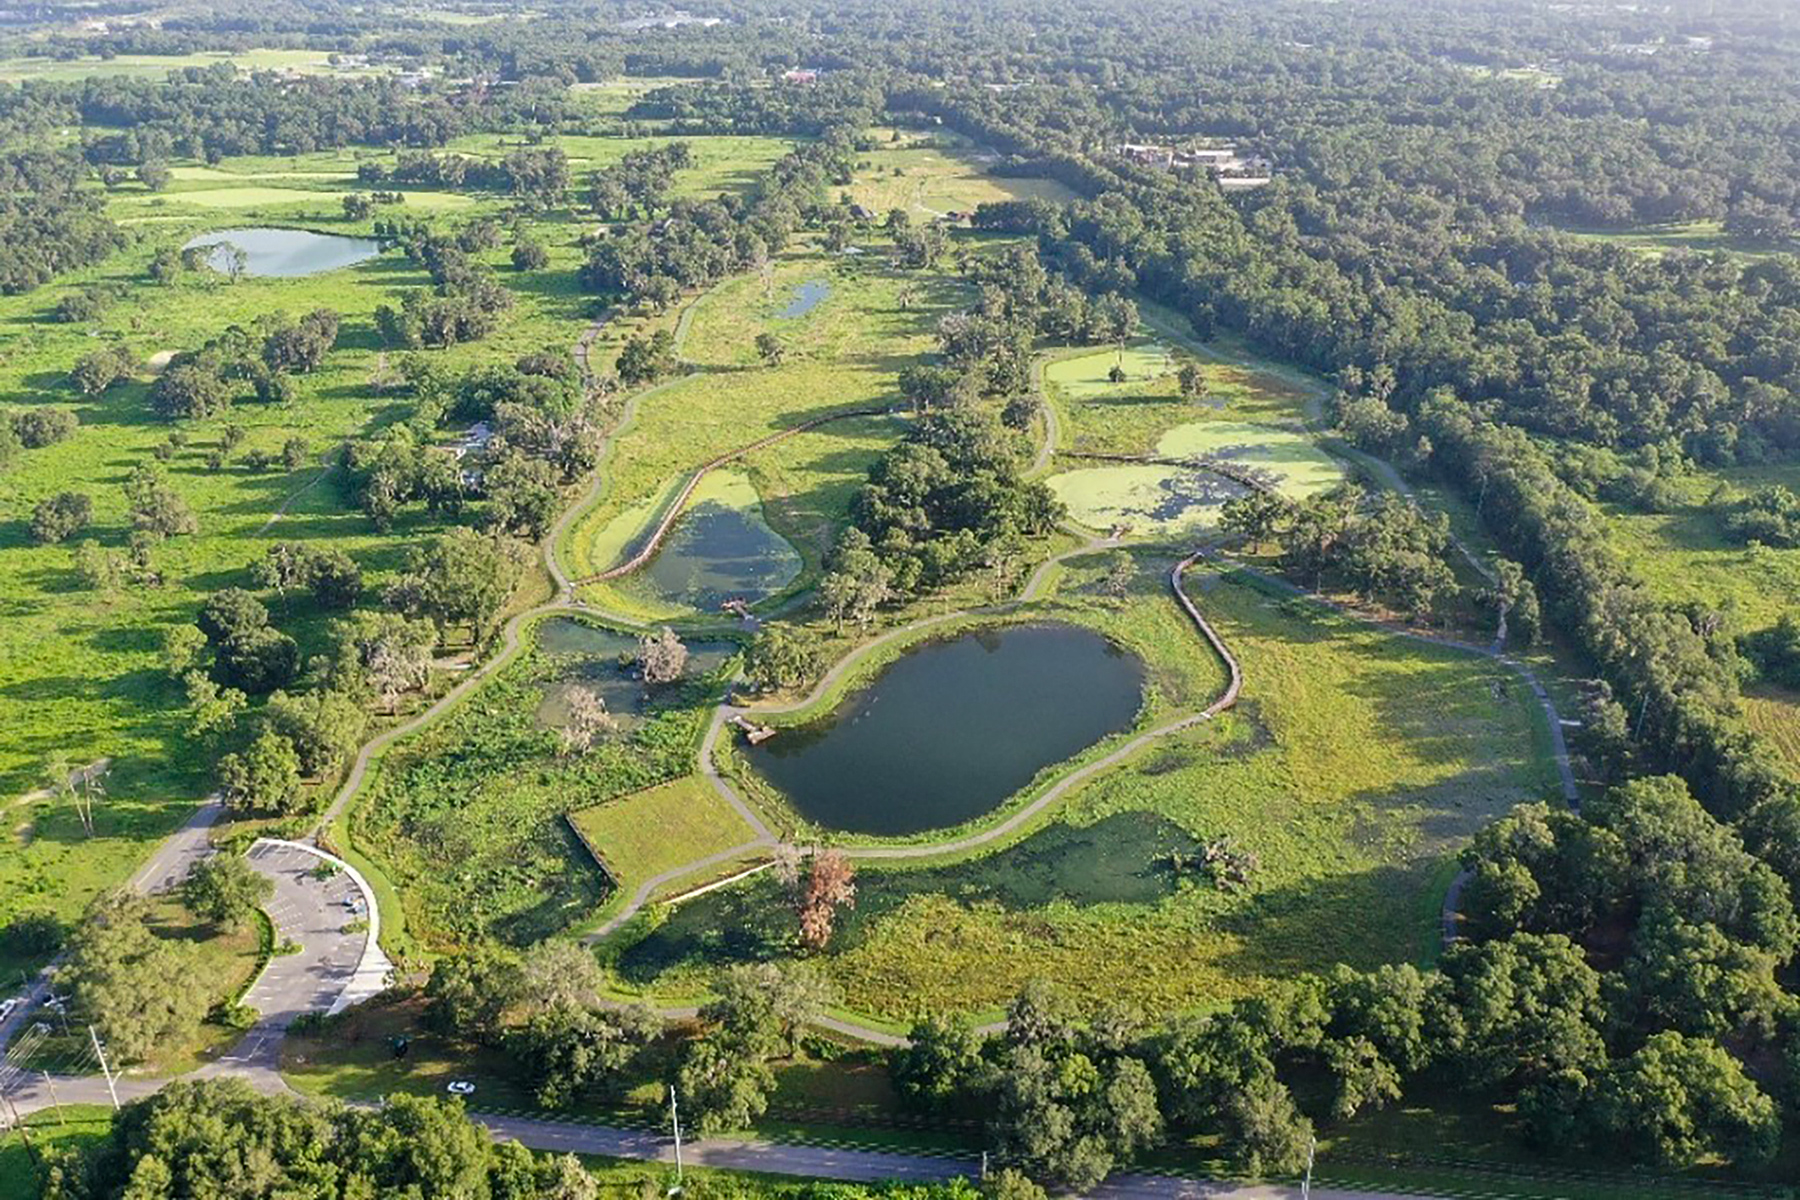 Aerial view of the Ocala Wetland Recharge Park